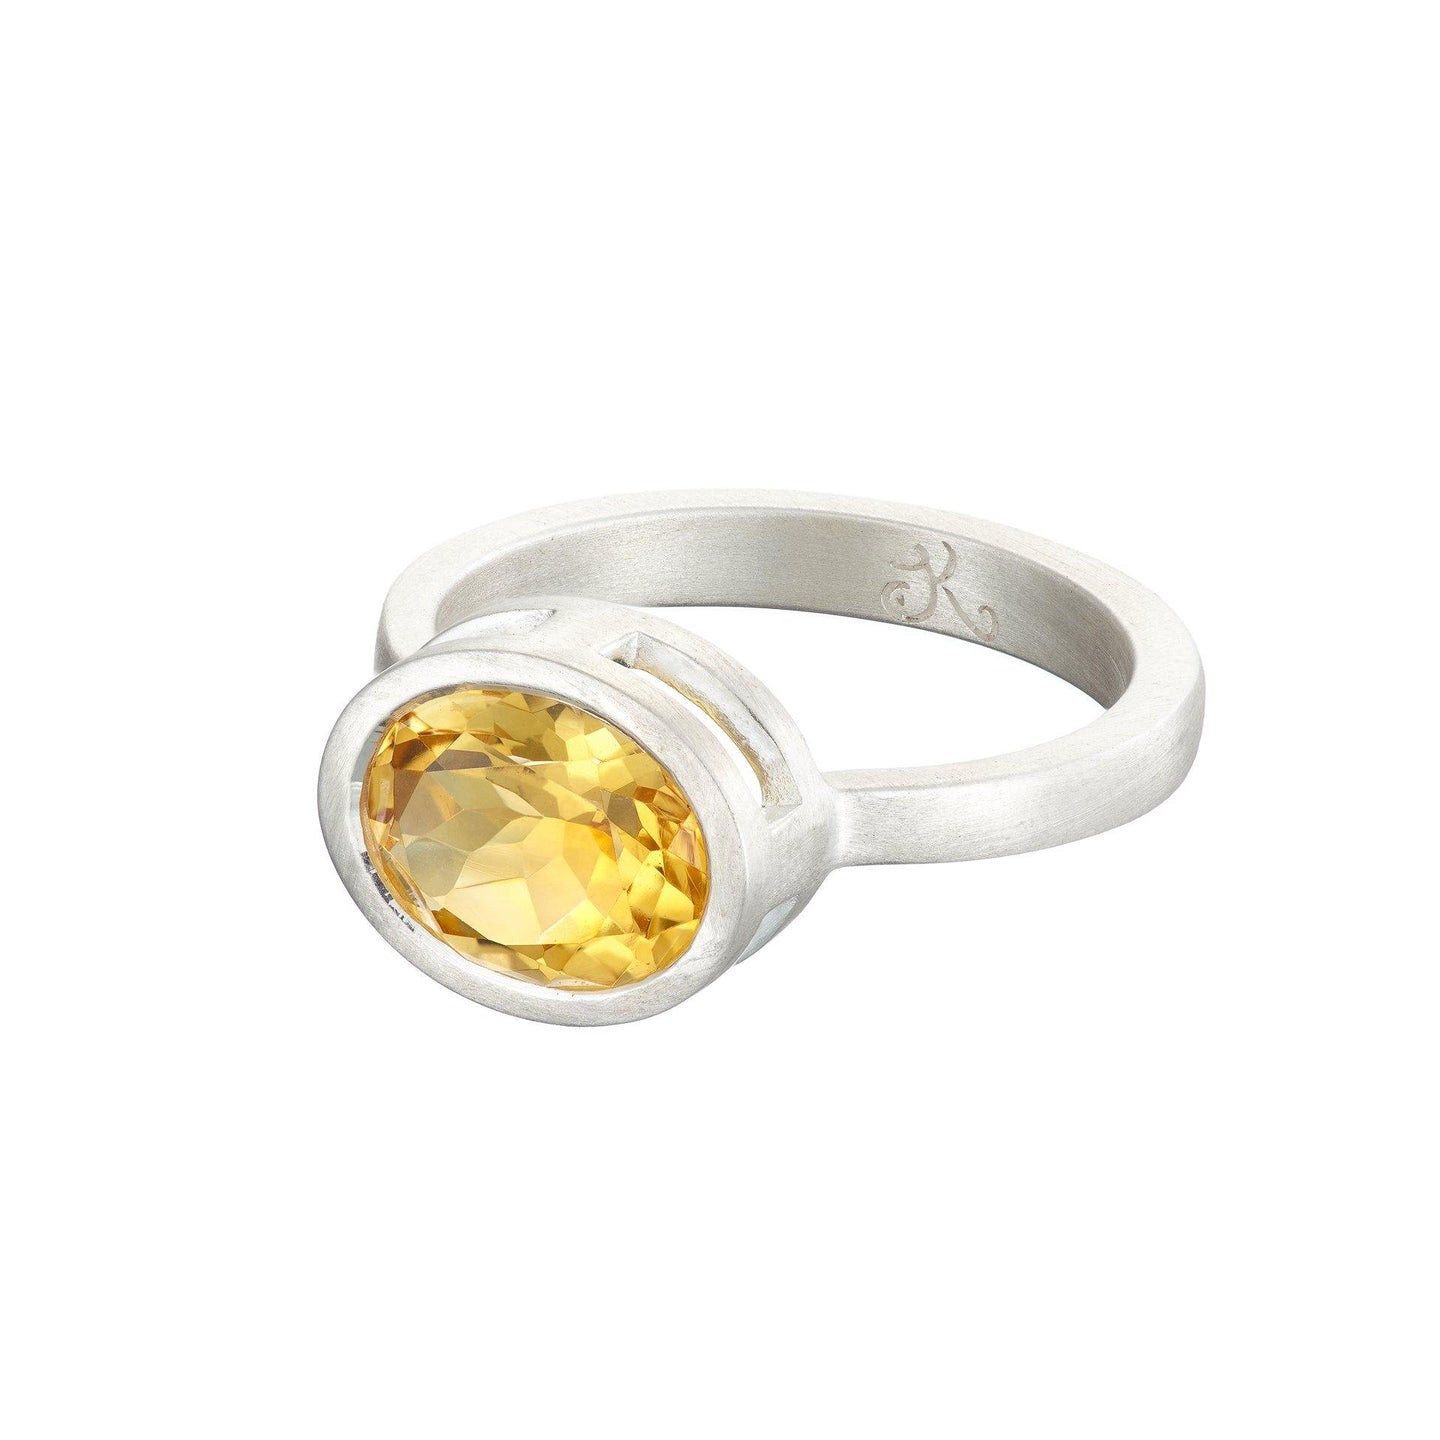 Citrine pirate ring in silver - The Collective Dublin